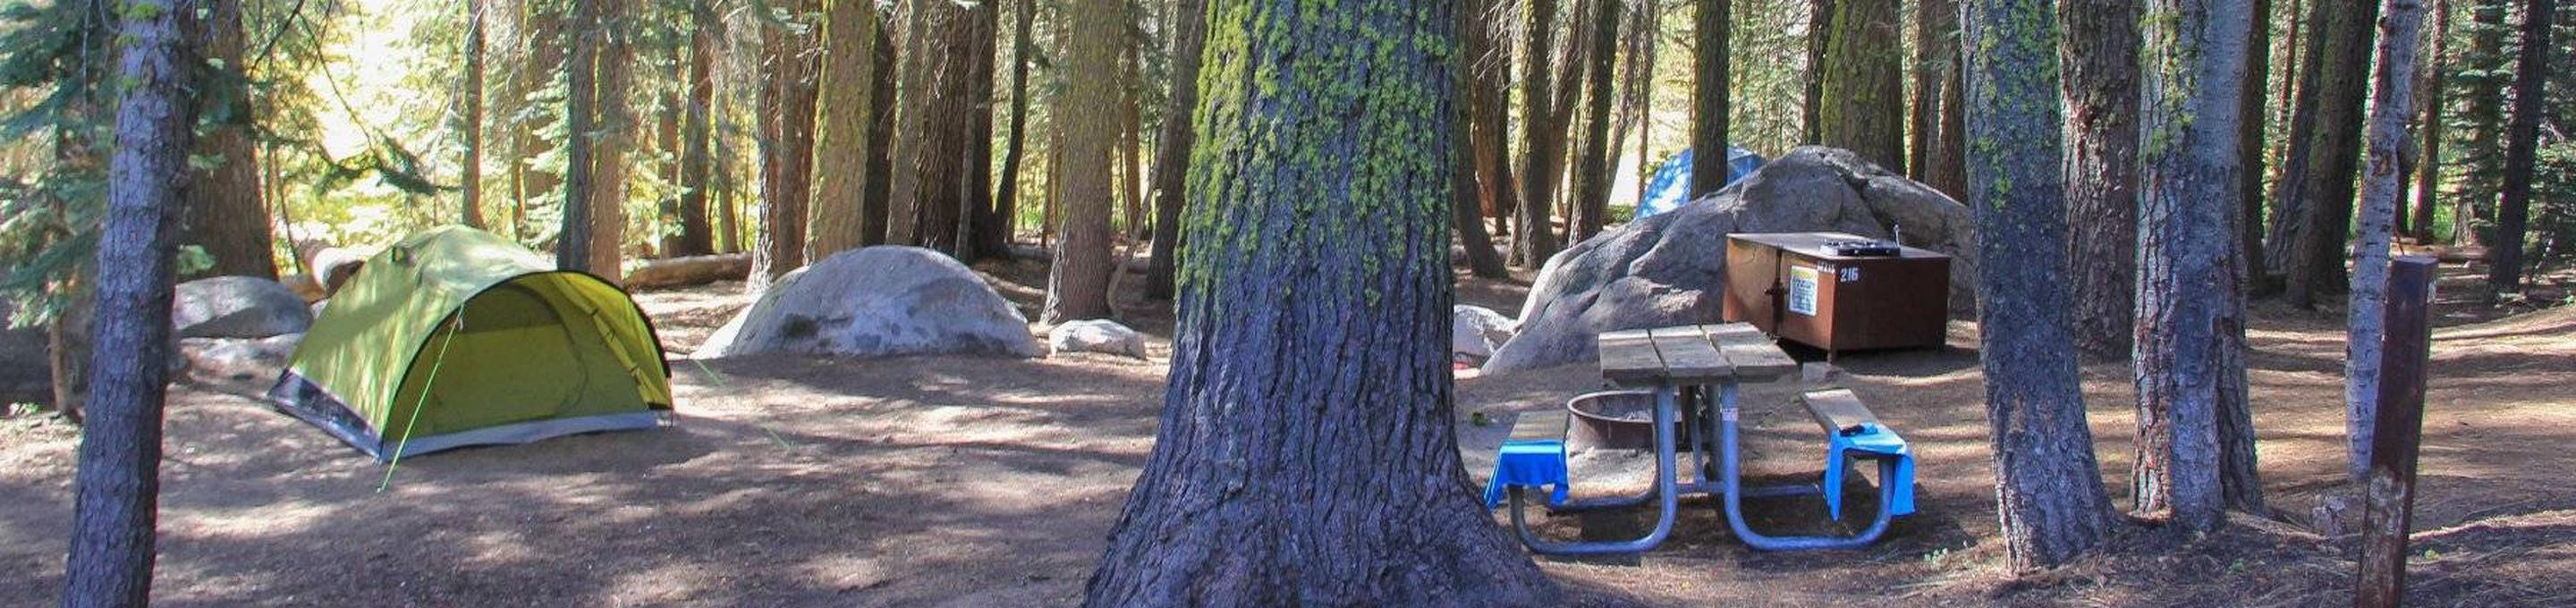 Picture of a site at Crane Flat campground.Tent campsite at Crane Flat campground.